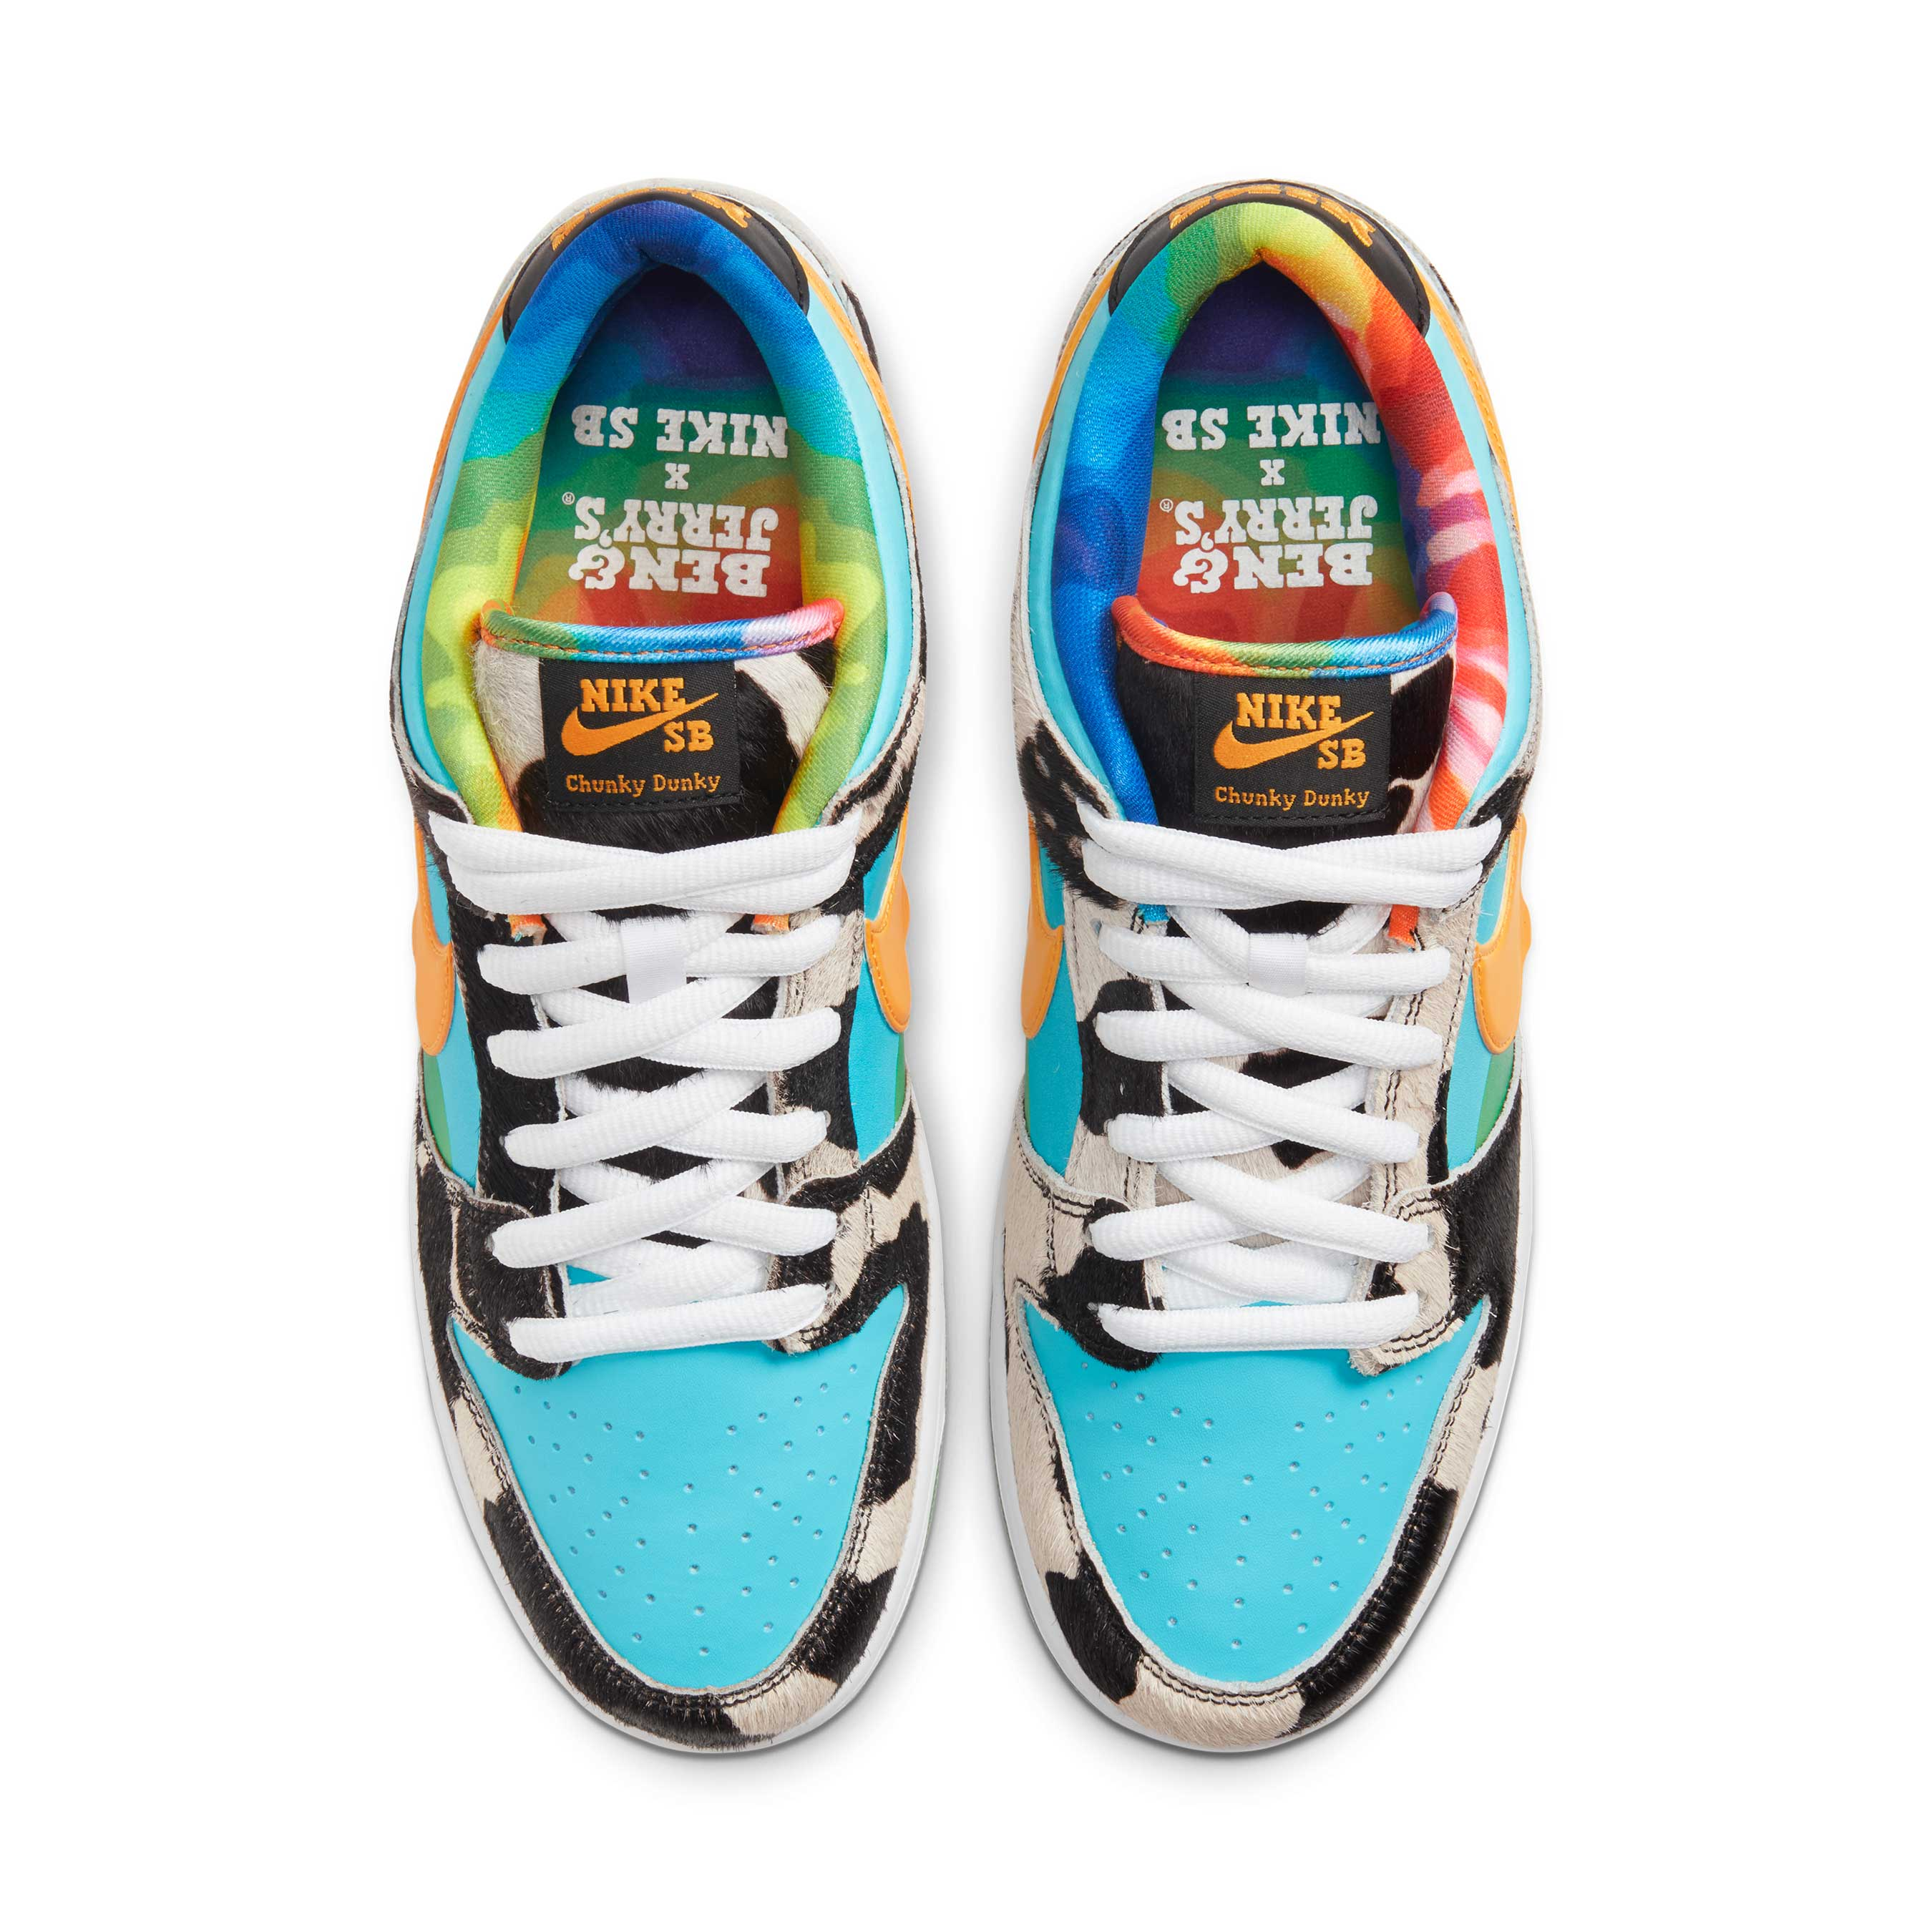 "NikeSB's new Ben & Jerry's inspired sneakers dubbed the ""Chunky Dunky."""